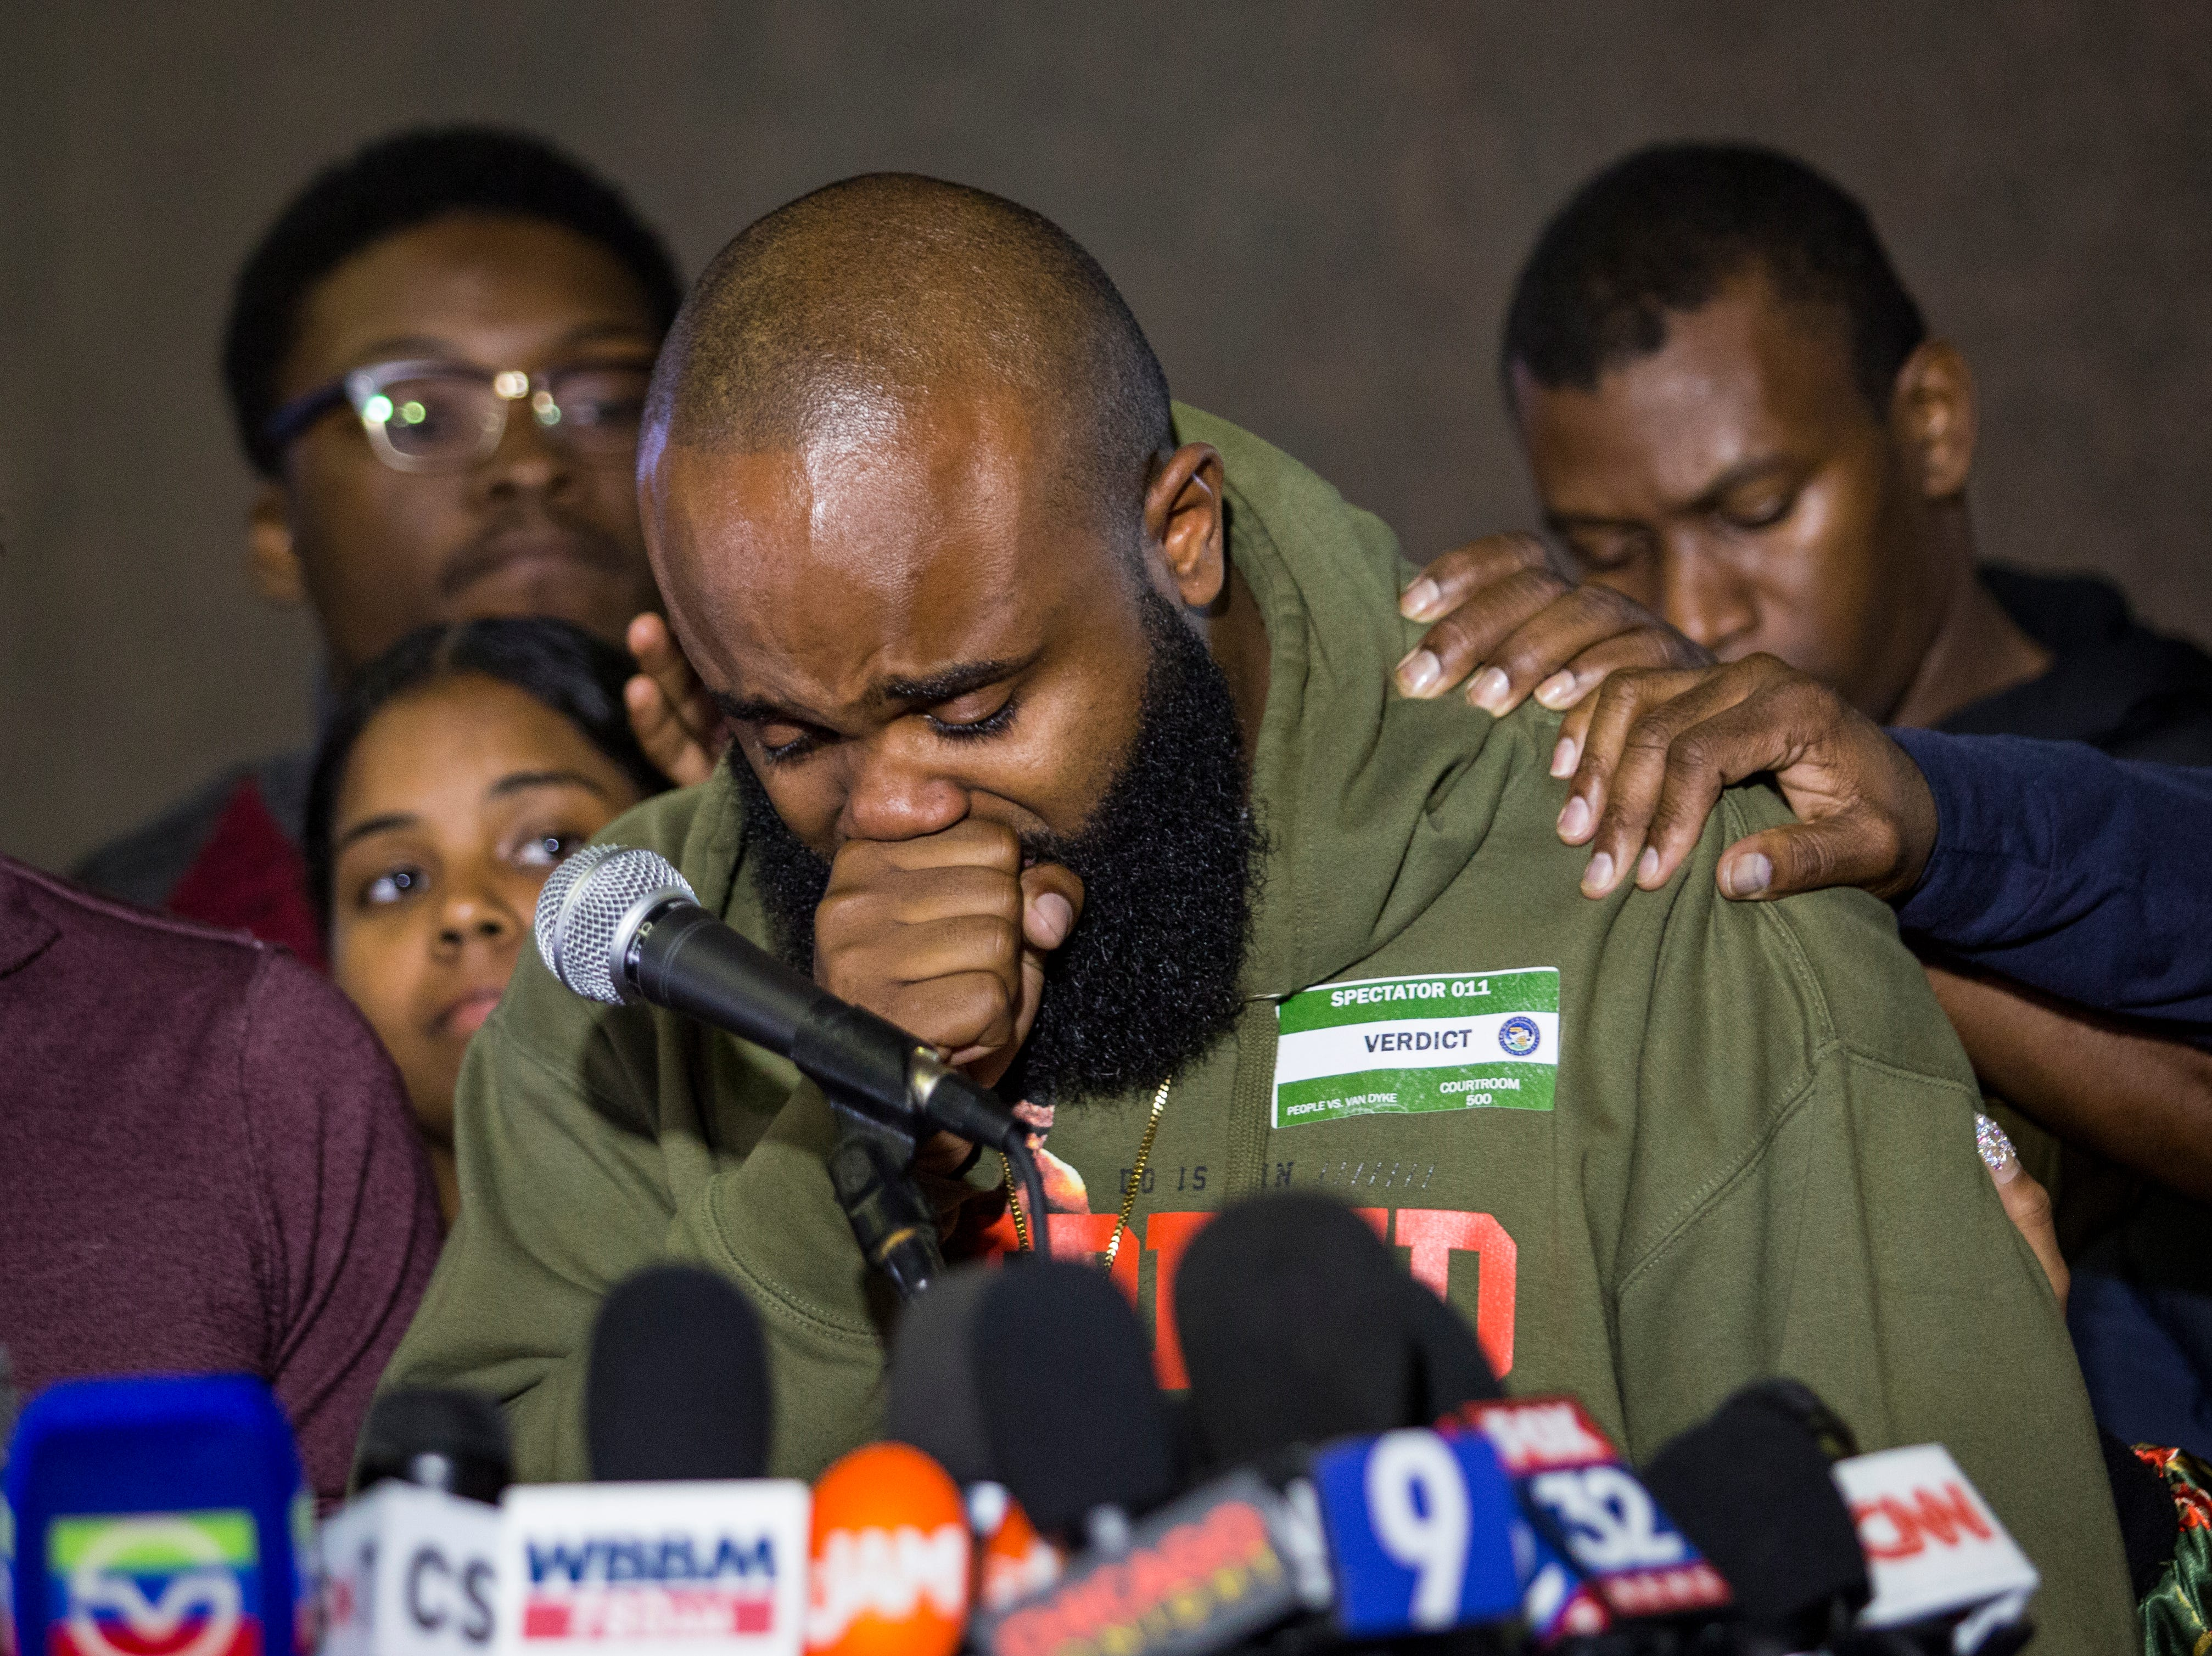 Community activist William Calloway gets emotional as he speaks to reporters at the Leighton Criminal Courthouse, Friday, Oct. 5, 2018, in Chicago, after jury found white Chicago police Officer Jason Van Dyke guilty of second-degree murder and aggravated battery in the 2014 shooting of black teenager Laquan McDonald.